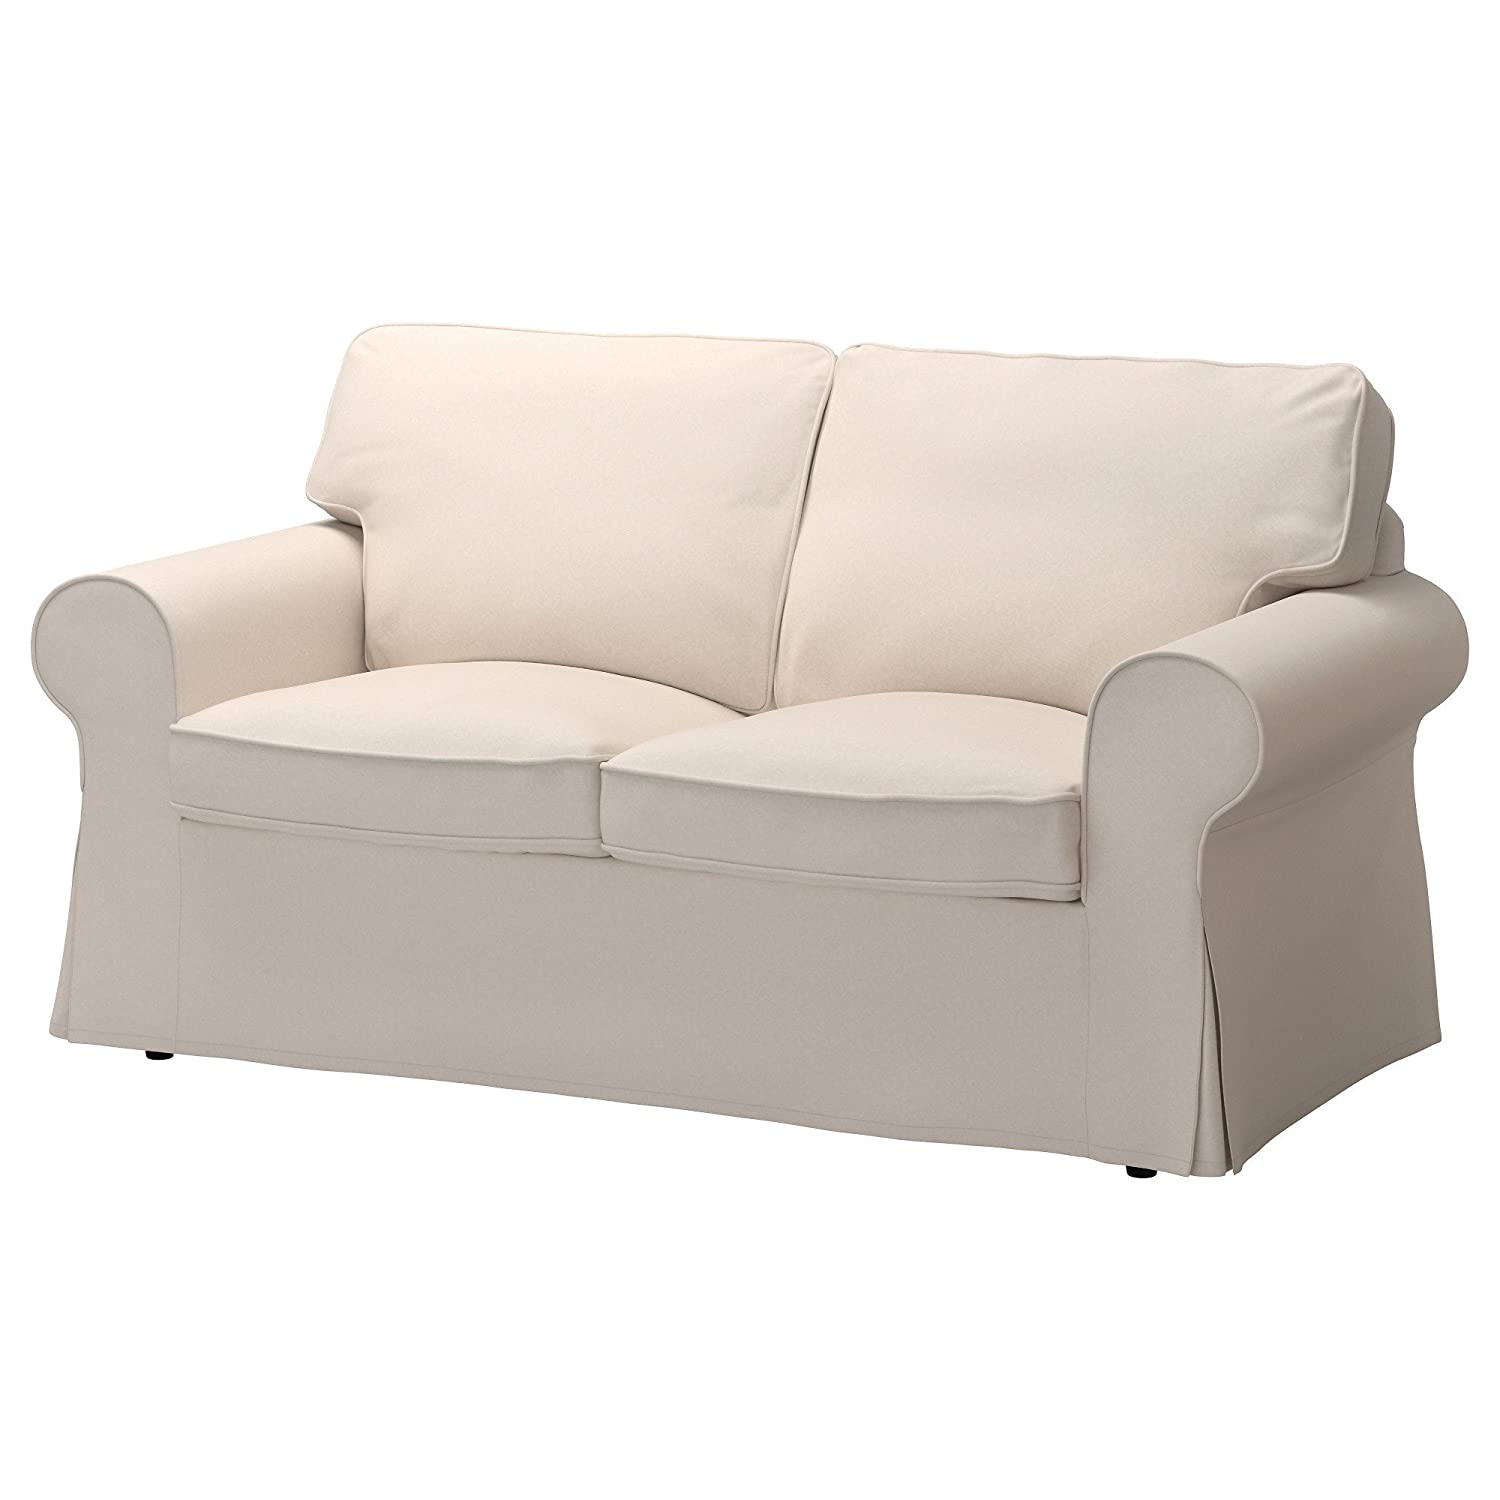 Amazon IKEA Ektorp Loveseat Cover Lofallet Beige Home & Kitchen